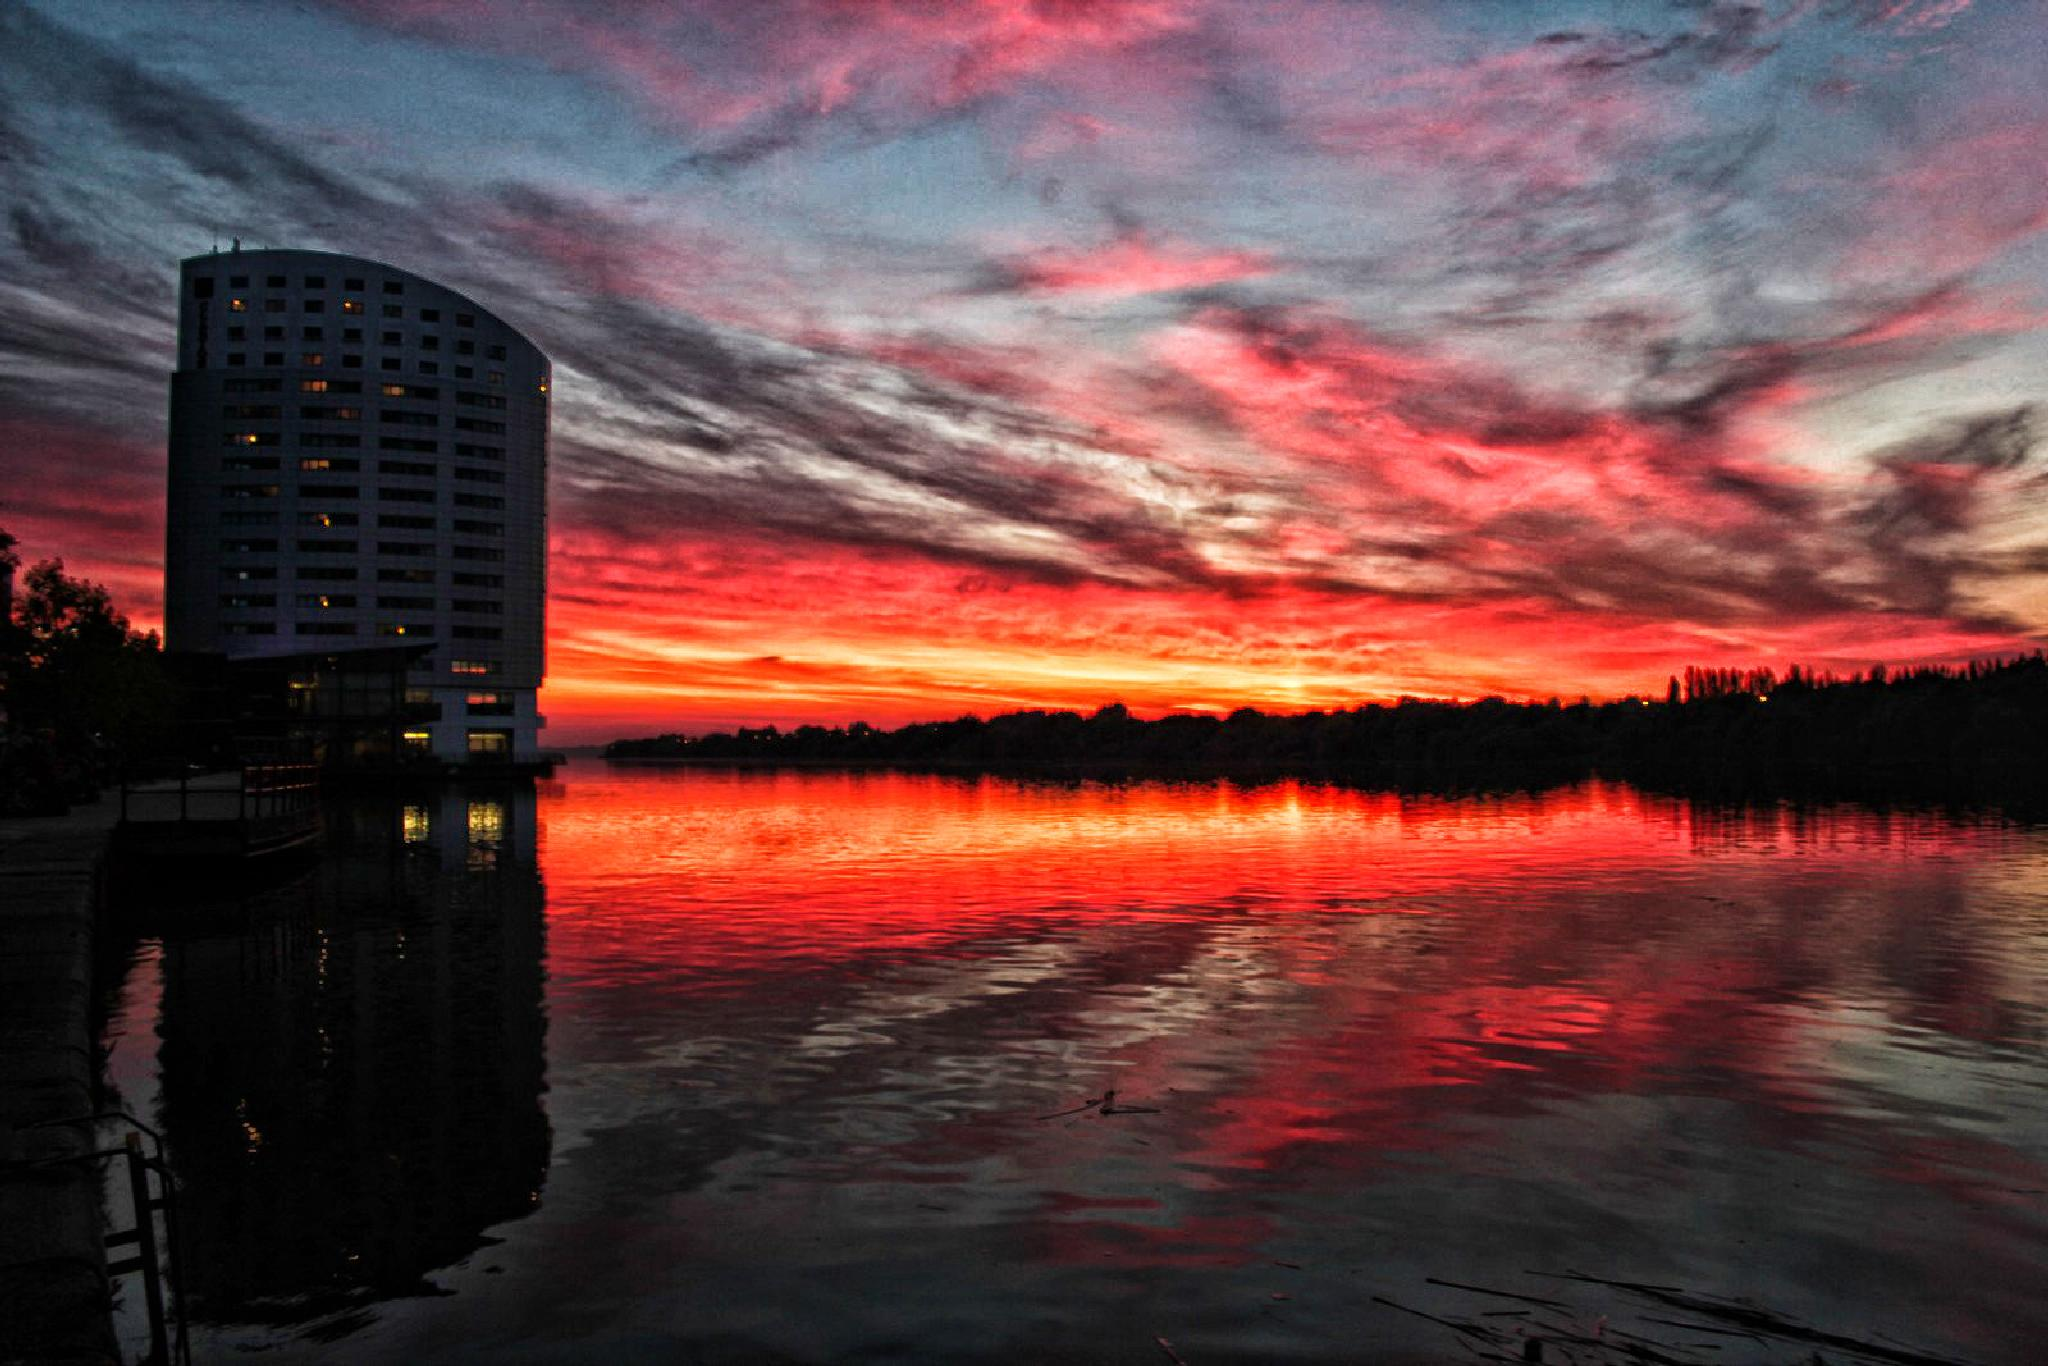 Clarion hotel on sunset over Shannon river - Limerick, Ireland by Krzysztof Luszczki